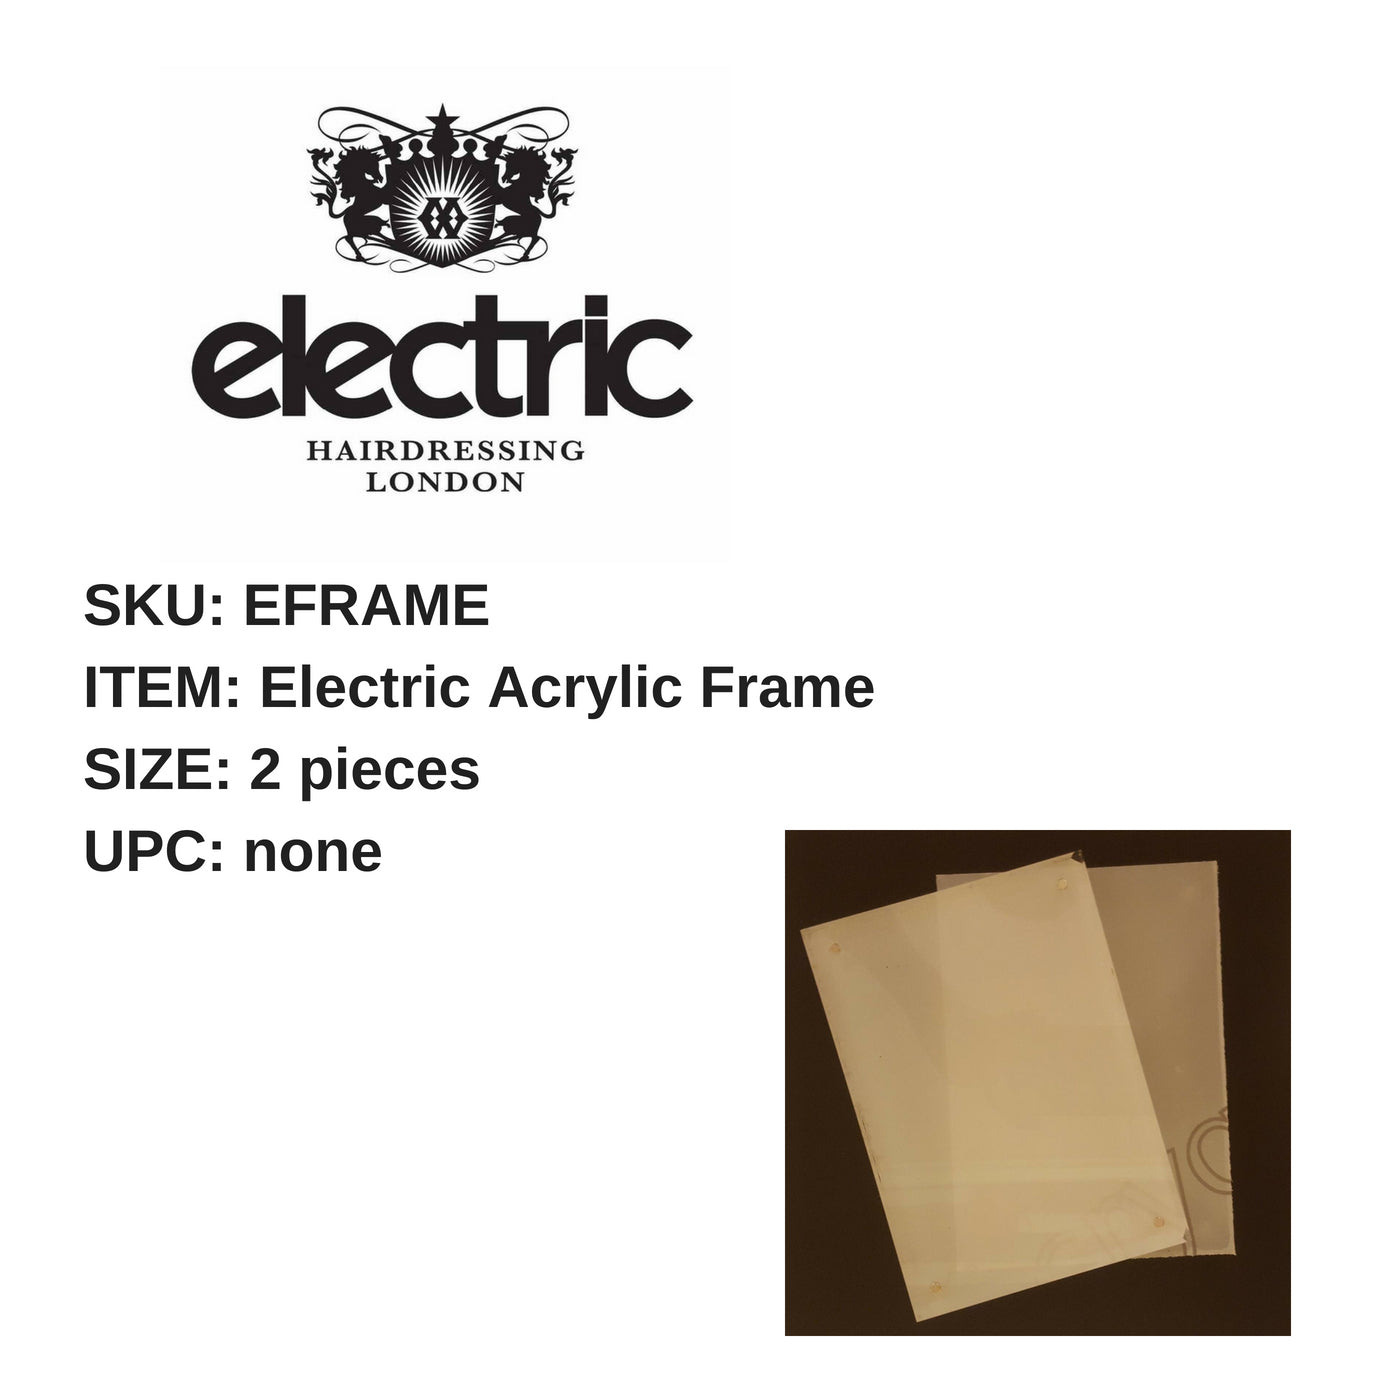 Electric Acrylic Frame